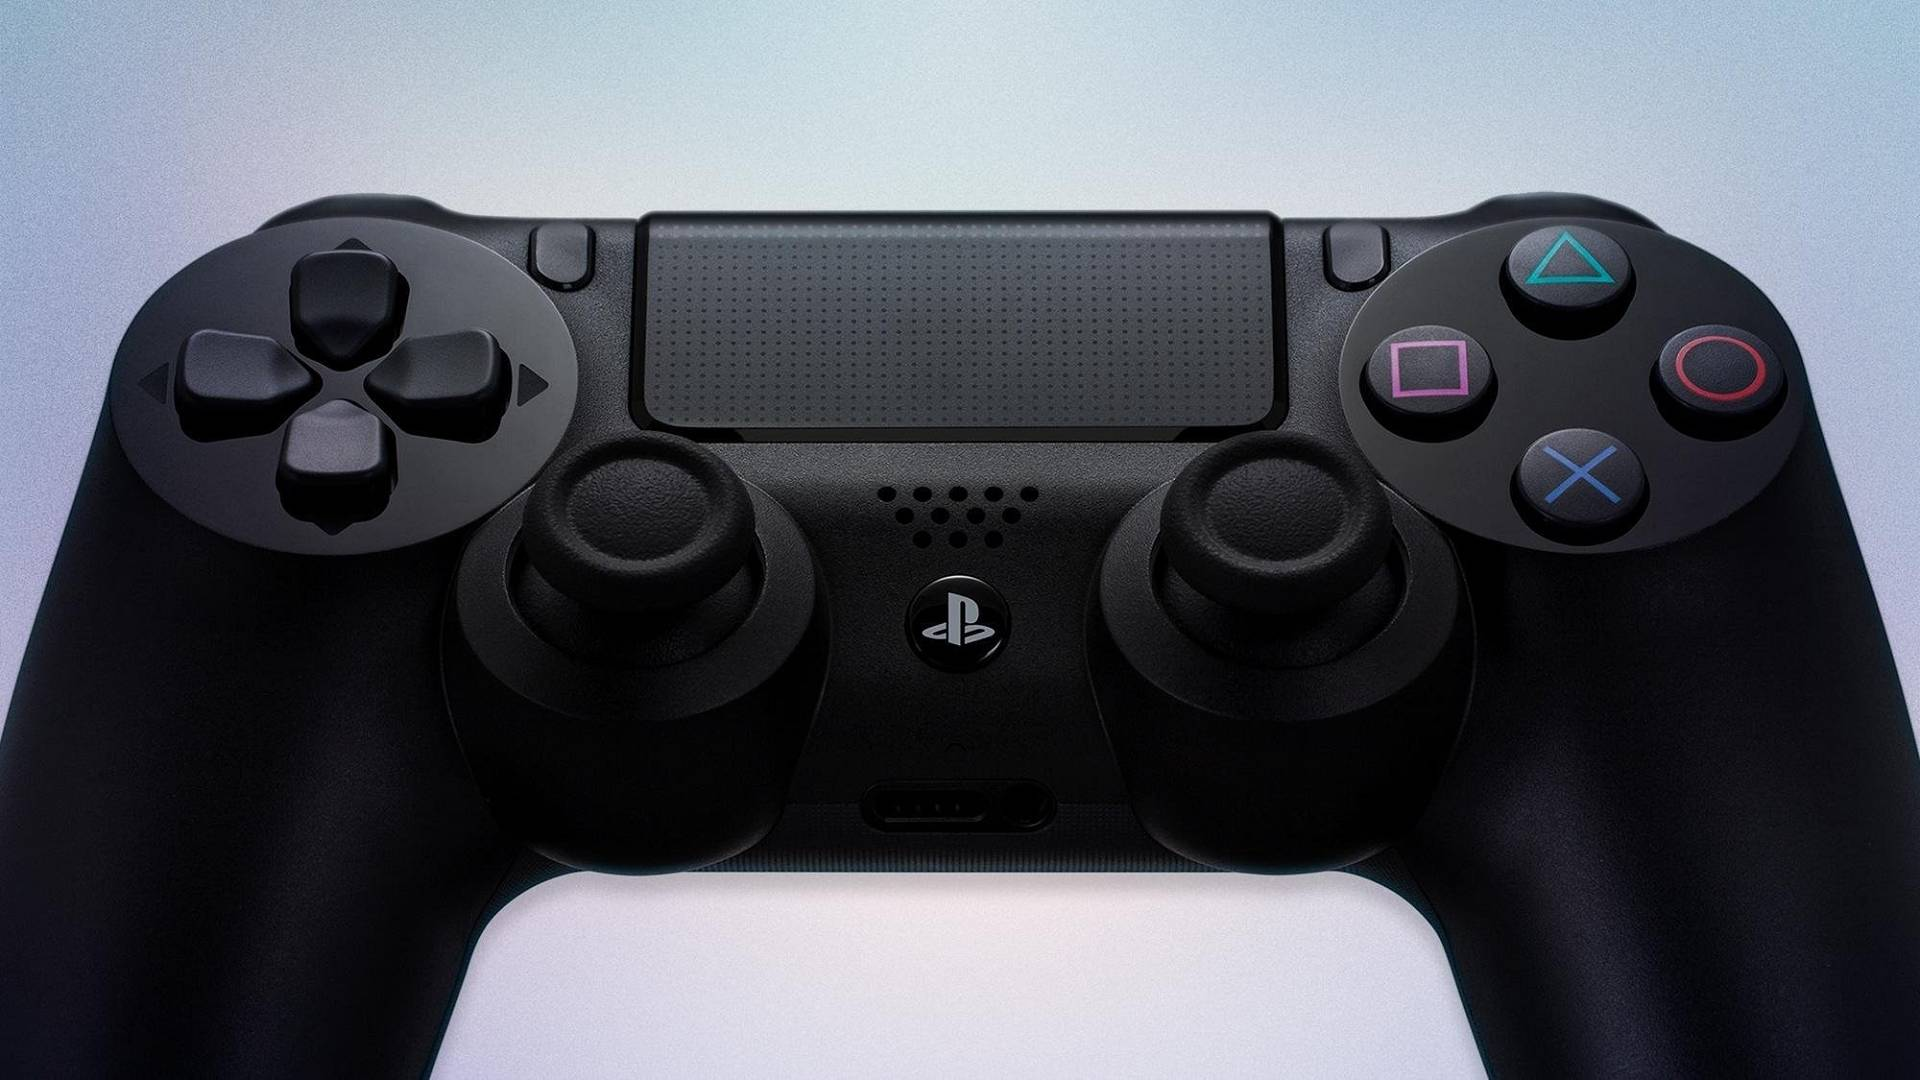 PlayStation 4 PlayStation 5 PS4 PS5 controller dualshock 4